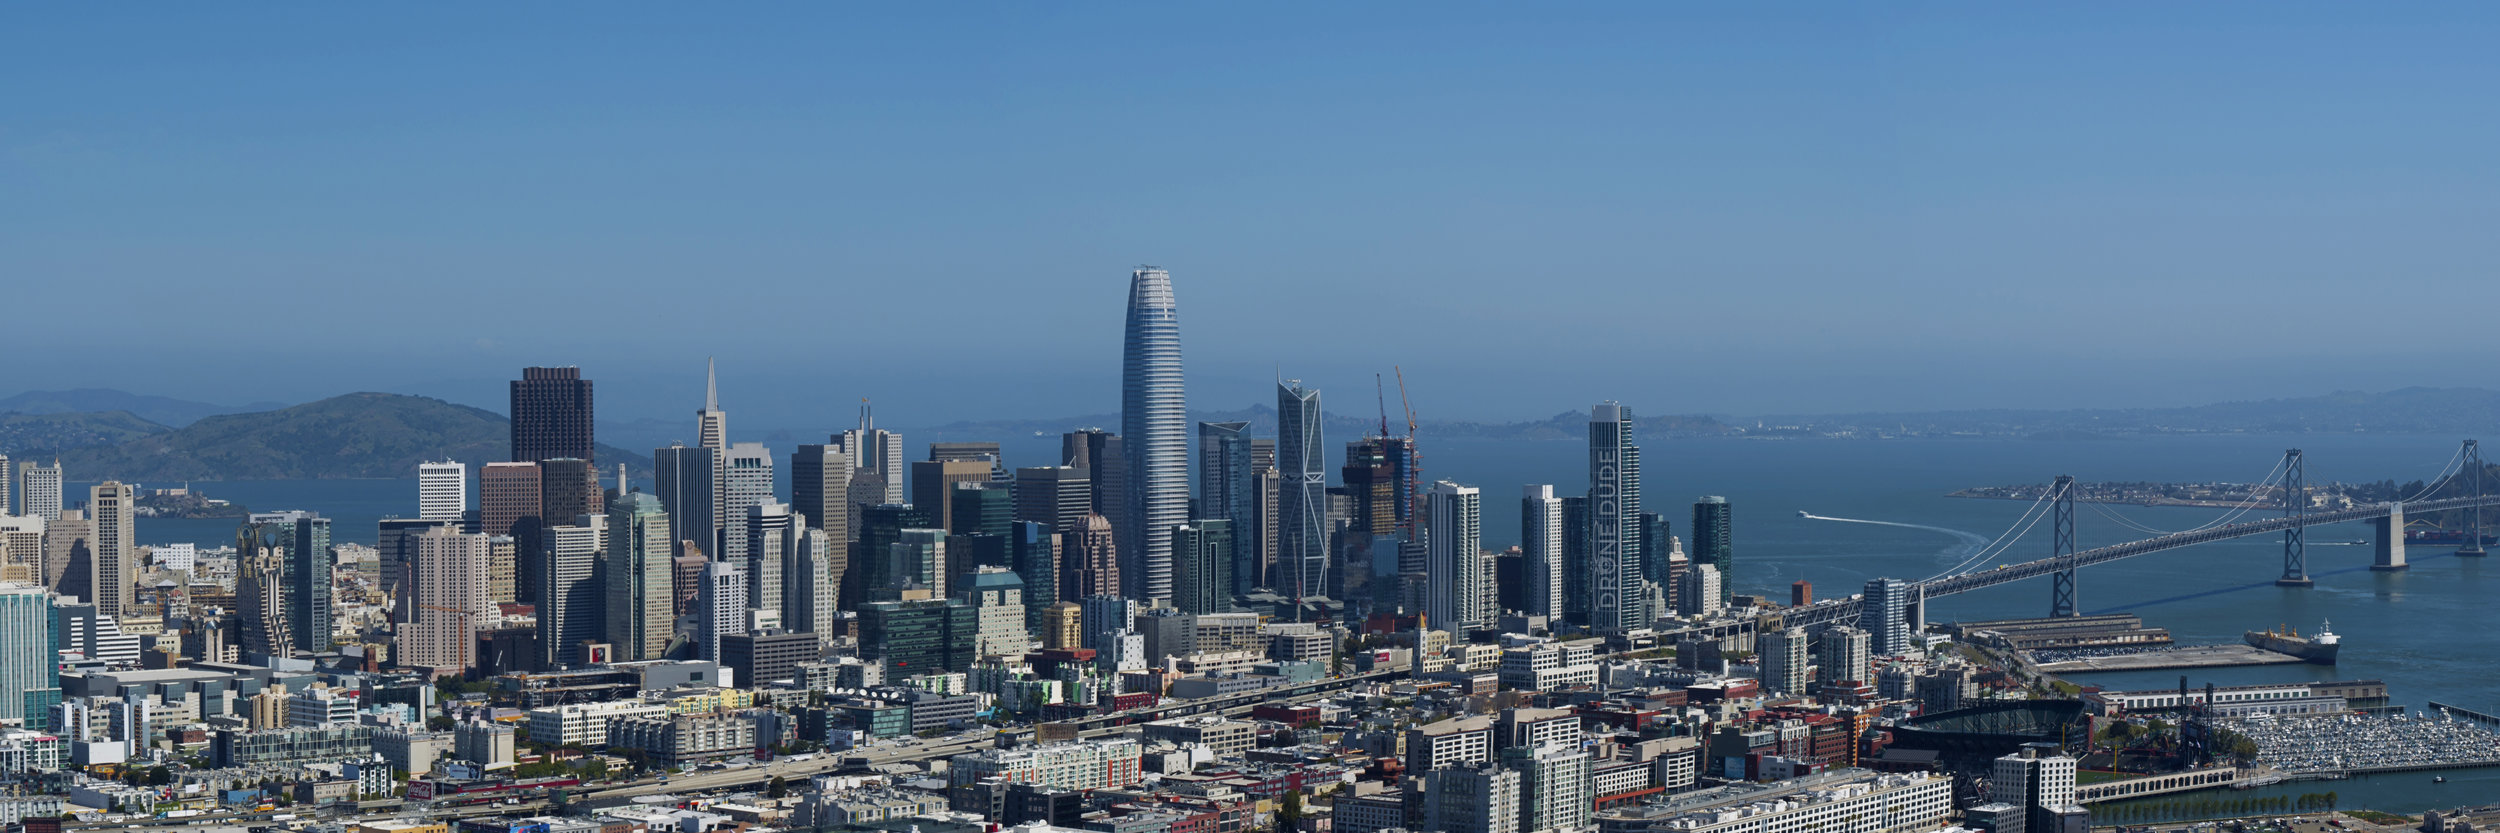 AERIAL PANORAMAS NOW AVAILABLE! 50+ megapixels